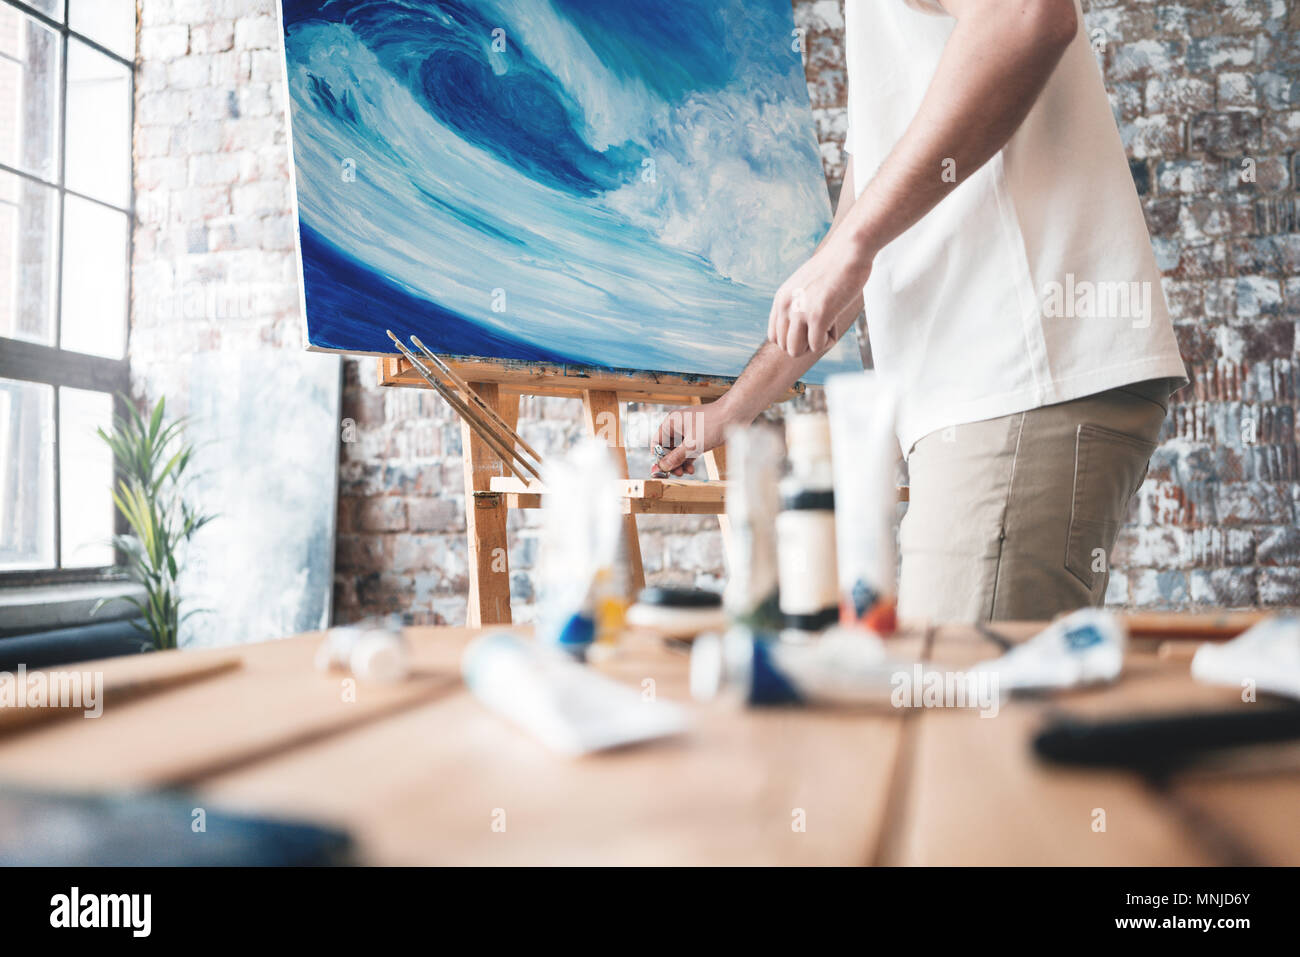 Painter artwork at workspace. Professional male artist painting on canvas in studio - Stock Image